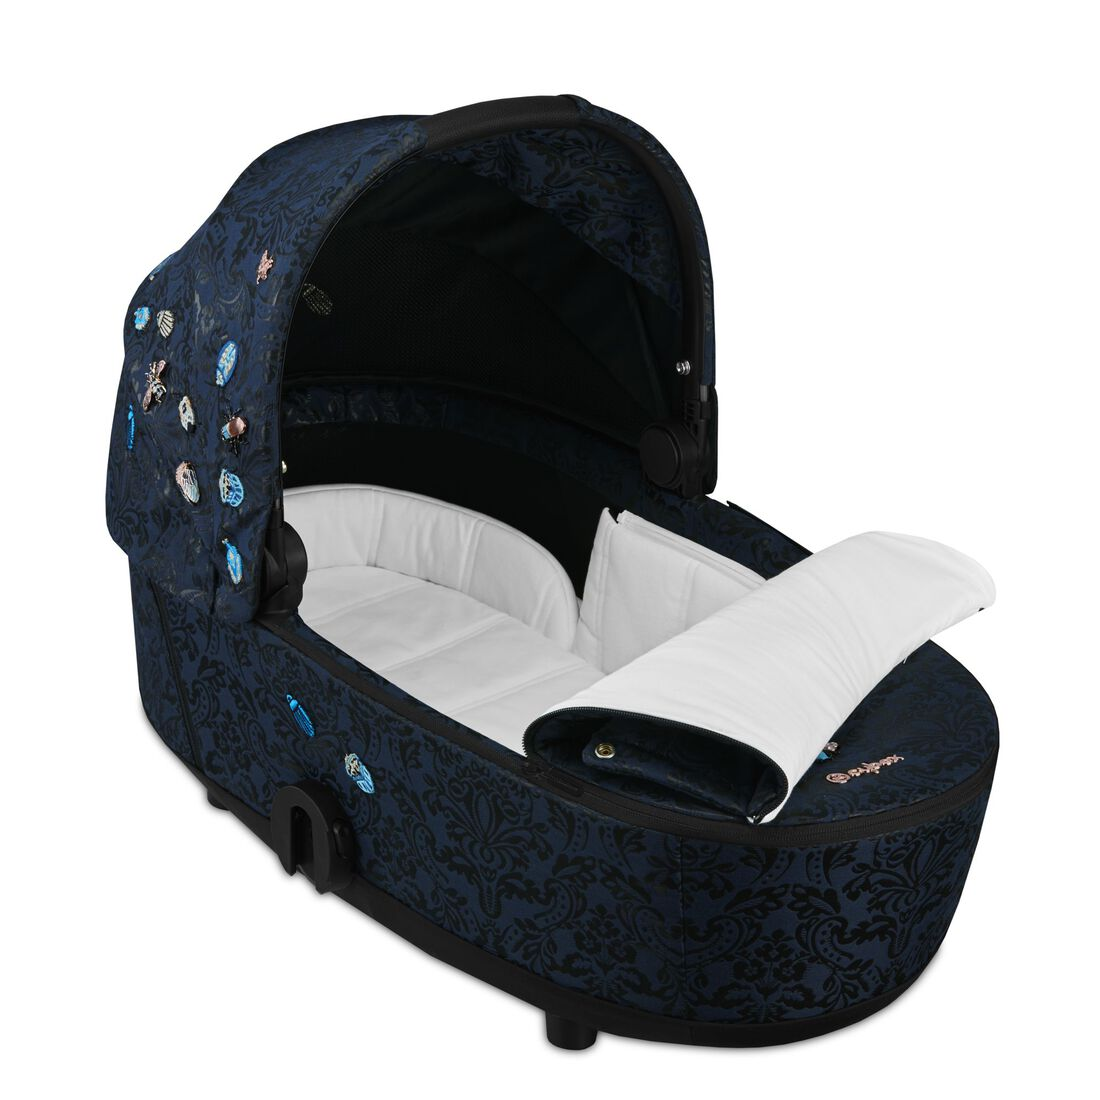 CYBEX Mios Lux Carry Cot - Jewels of Nature in Jewels of Nature large Bild 2